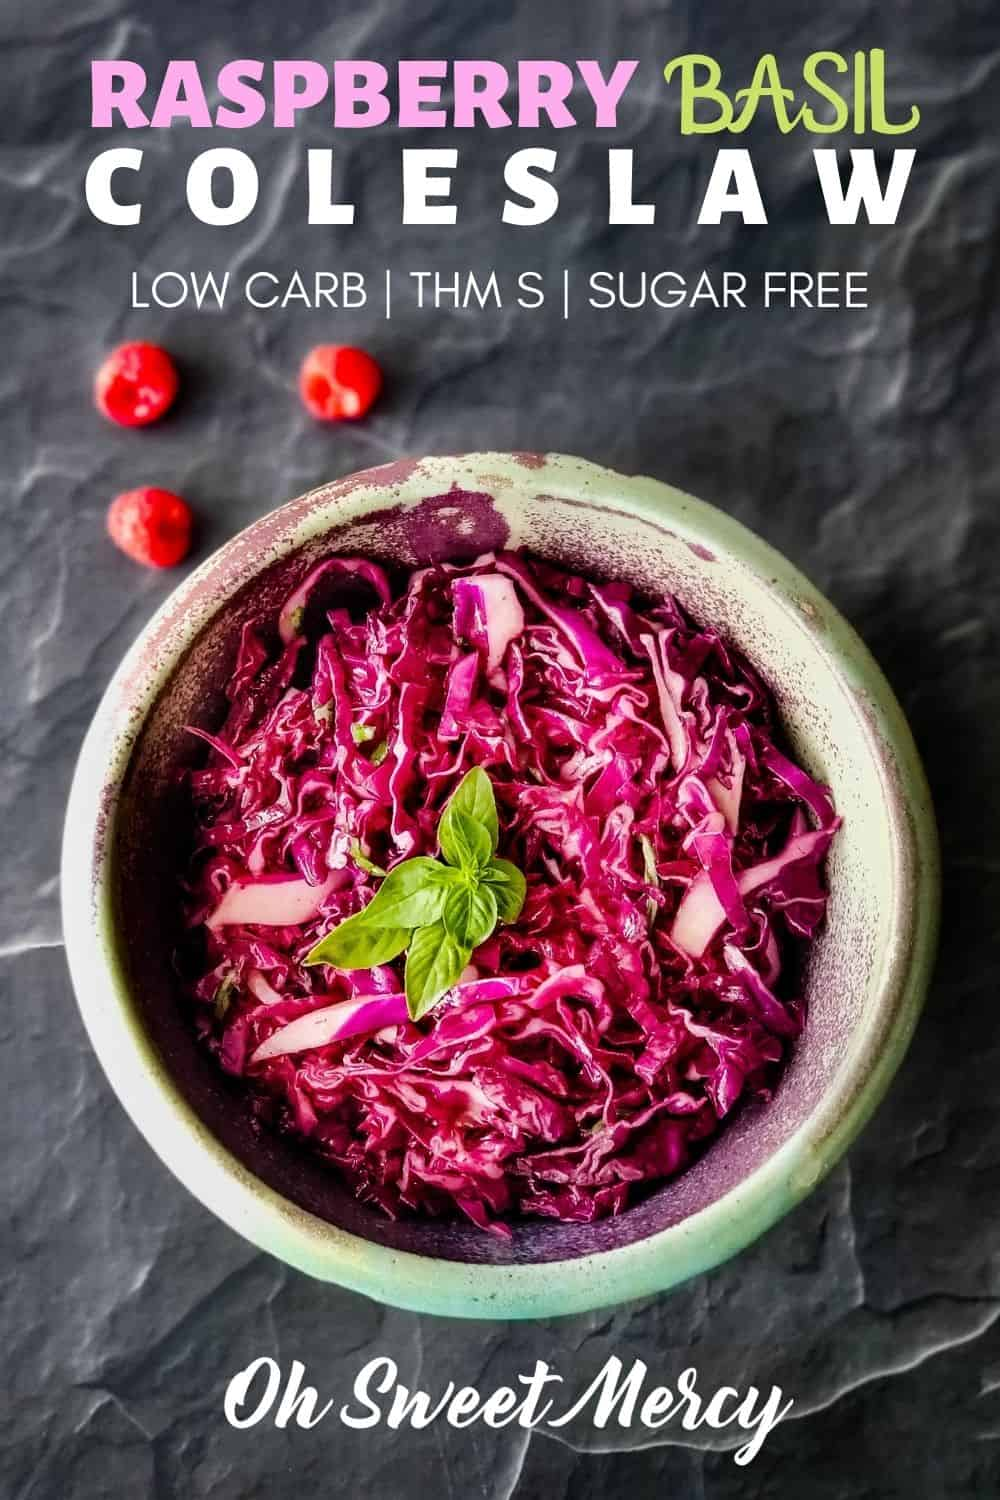 This sweet and tangy Raspberry Basil Coleslaw is the perfect low carb side dish for all your favorite main dish proteins. Enjoy the fresh flavors of summer all year long! #thm #lowcarb #sugarfree @ohsweetmercy